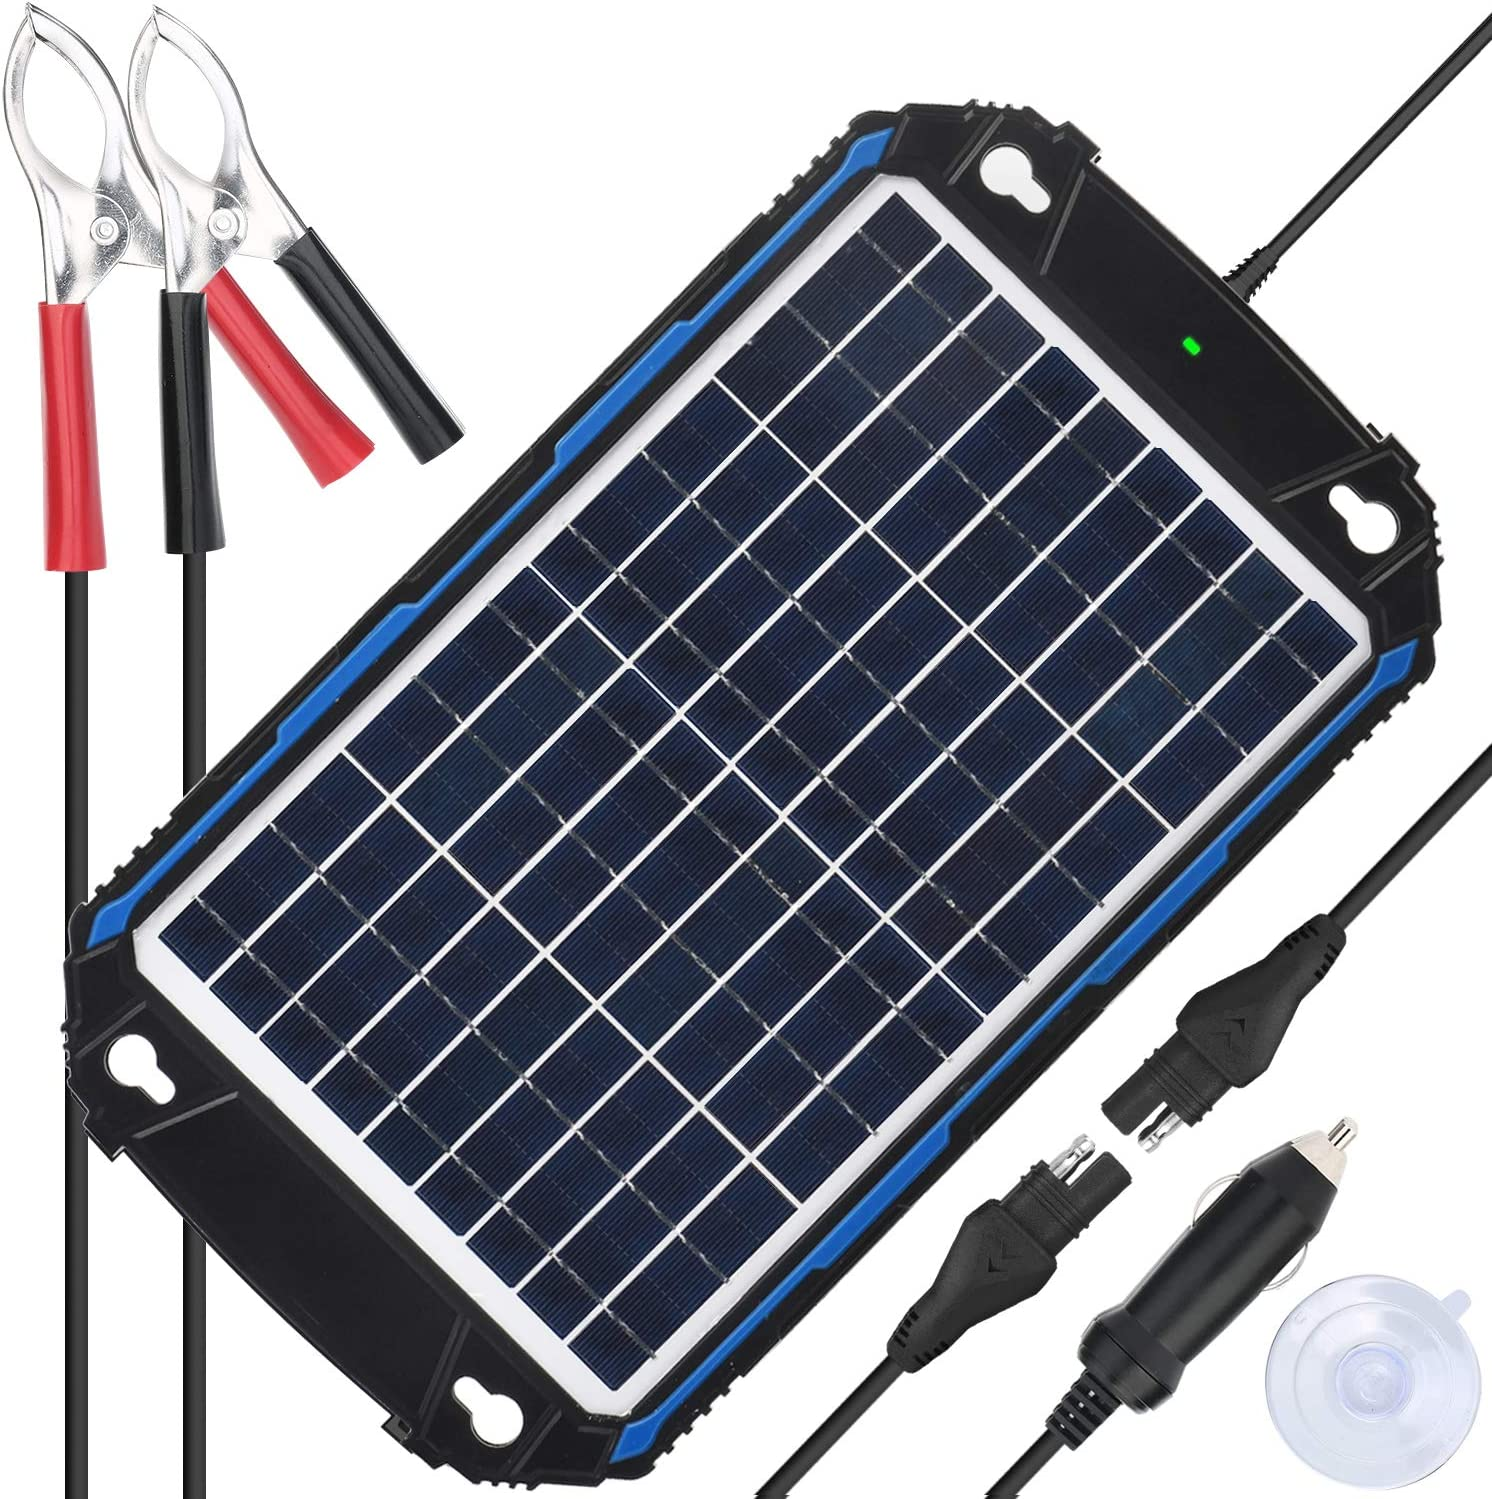 Marine RV etc 10 Watts Solar Panel Trickle Charging Kit for Car Upgraded Waterproof 12V Solar Battery Charger /& Maintainer Pro Built-in Intelligent MPPT Charge Controller Motorcycle